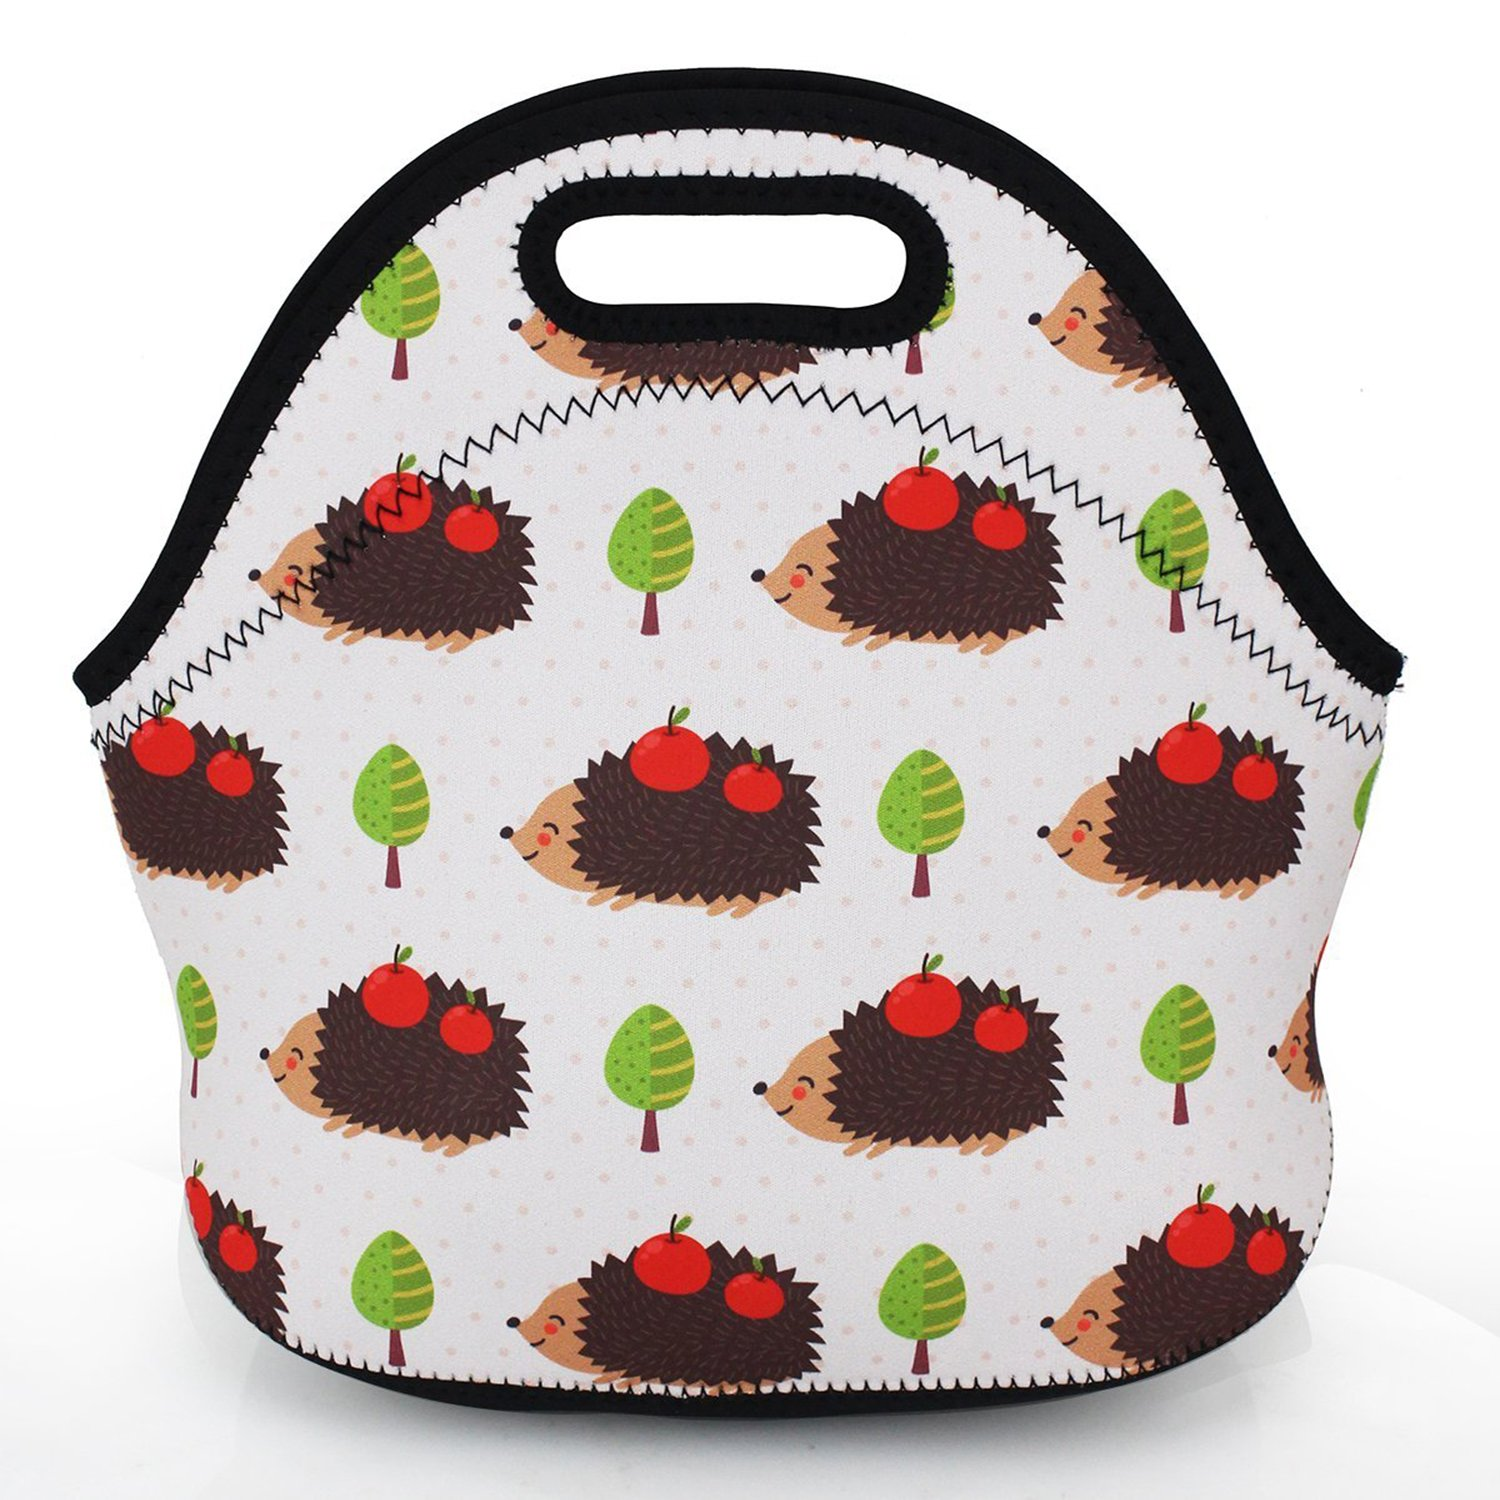 ZMvise Apple Hedgehog Lunch Tote Insulated Reusable Picnic Lunch Bags Boxes Men Women Kids Toddler Nurses Travel Bag